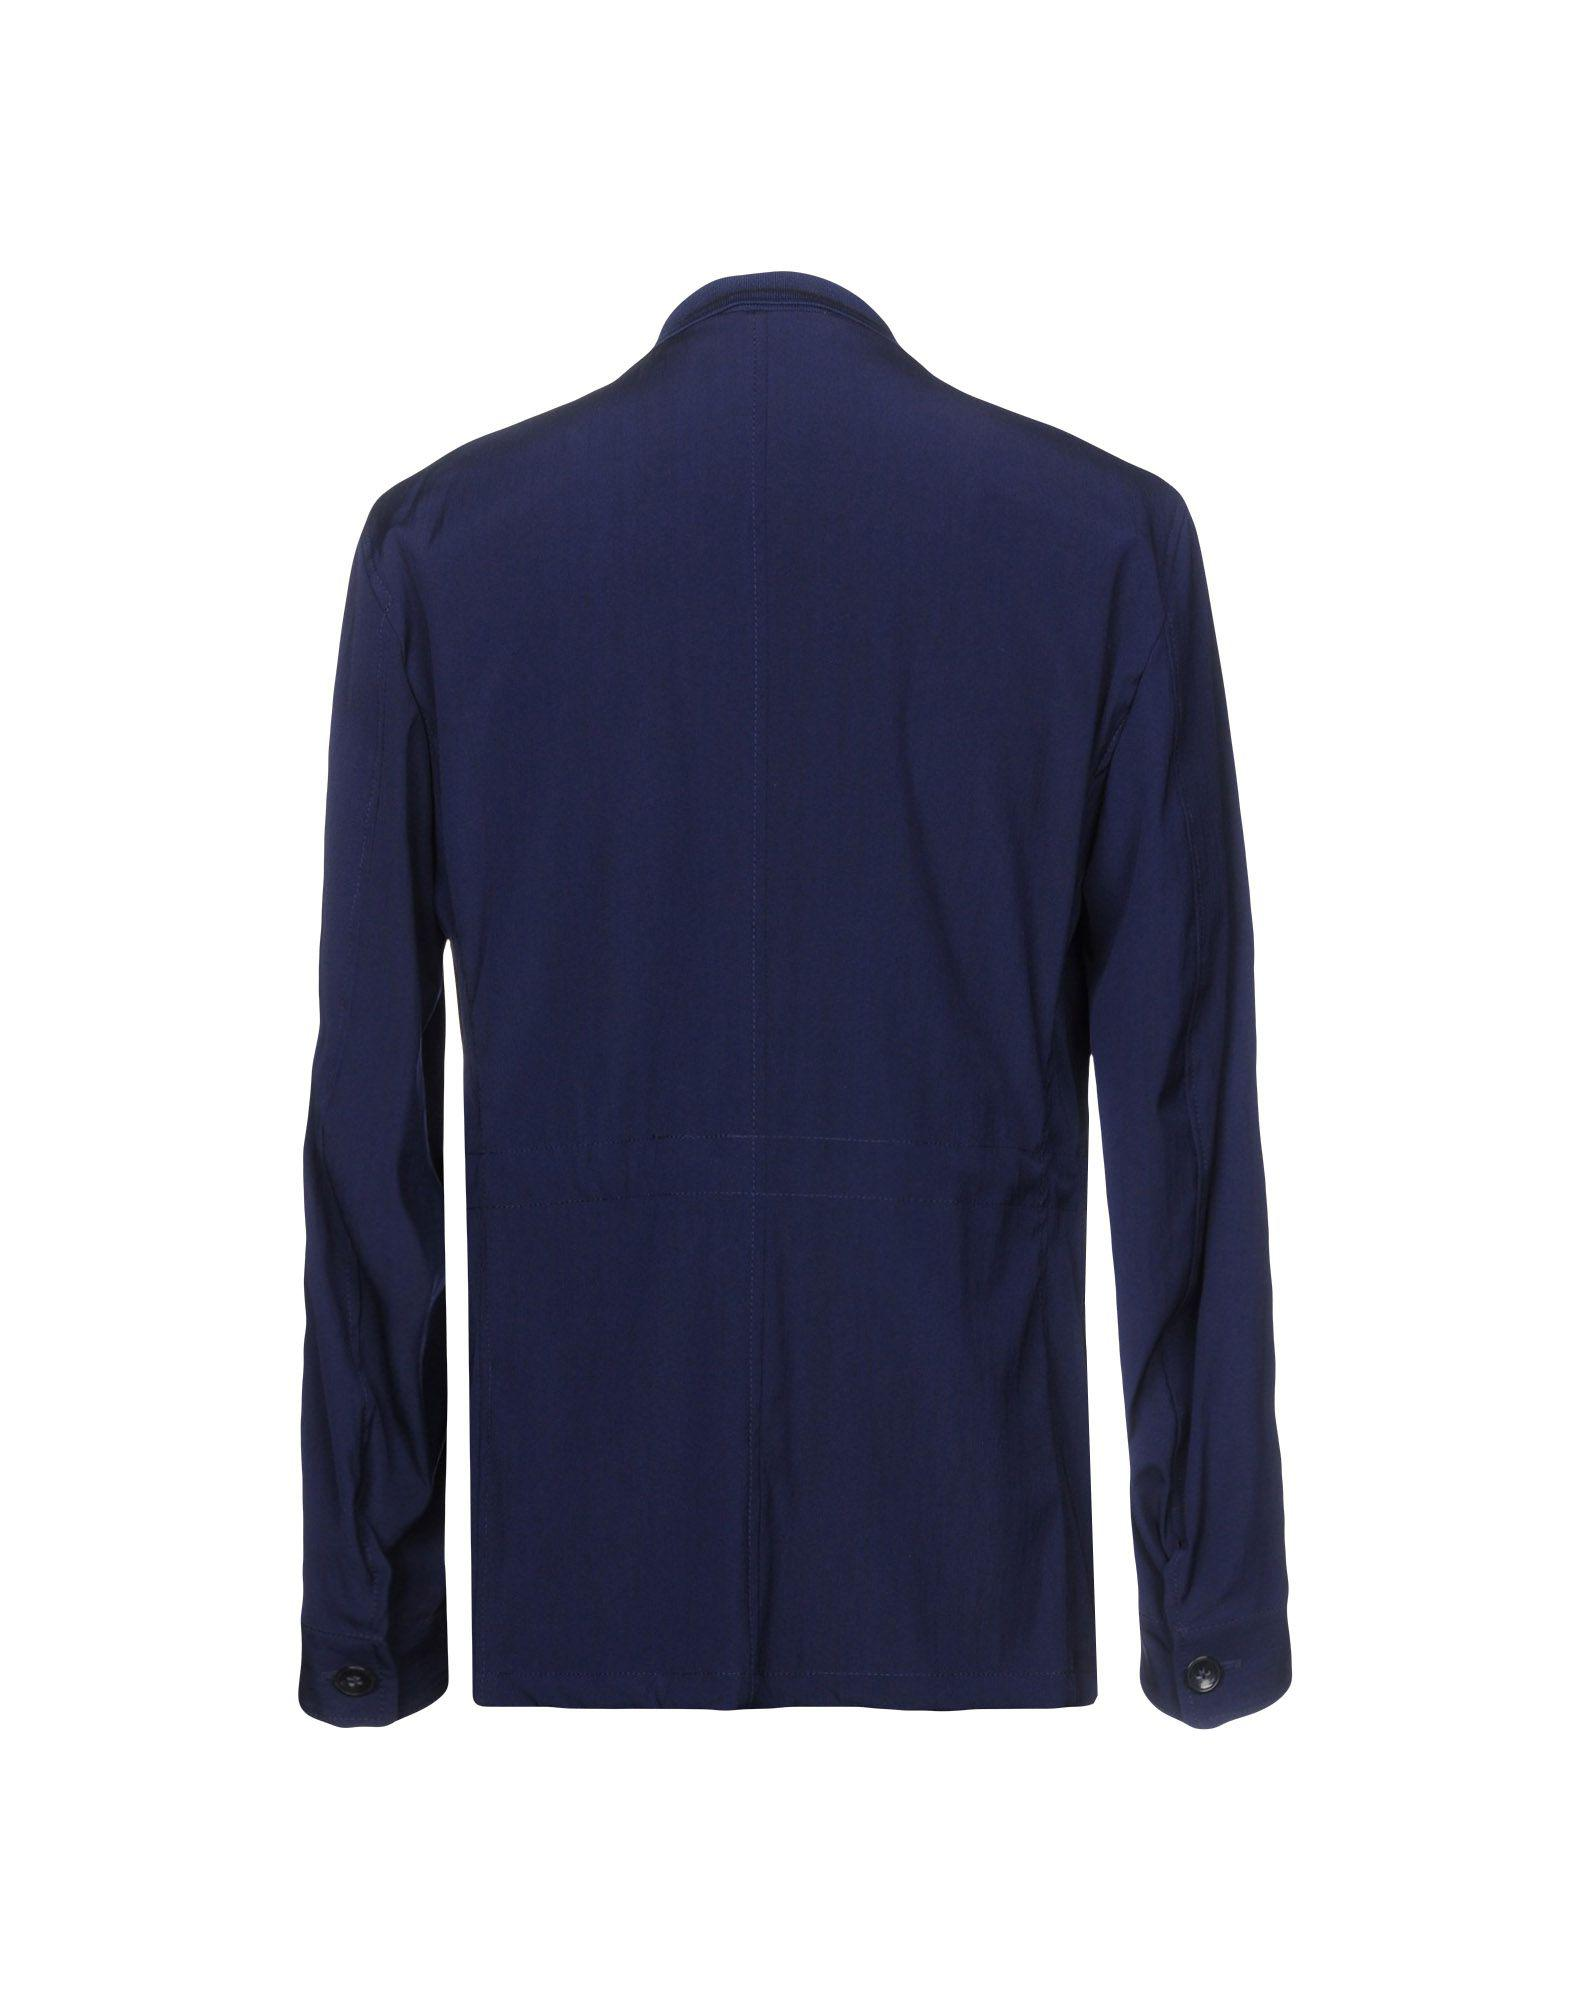 Hevò Wool Coat in Dark Blue (Blue) for Men